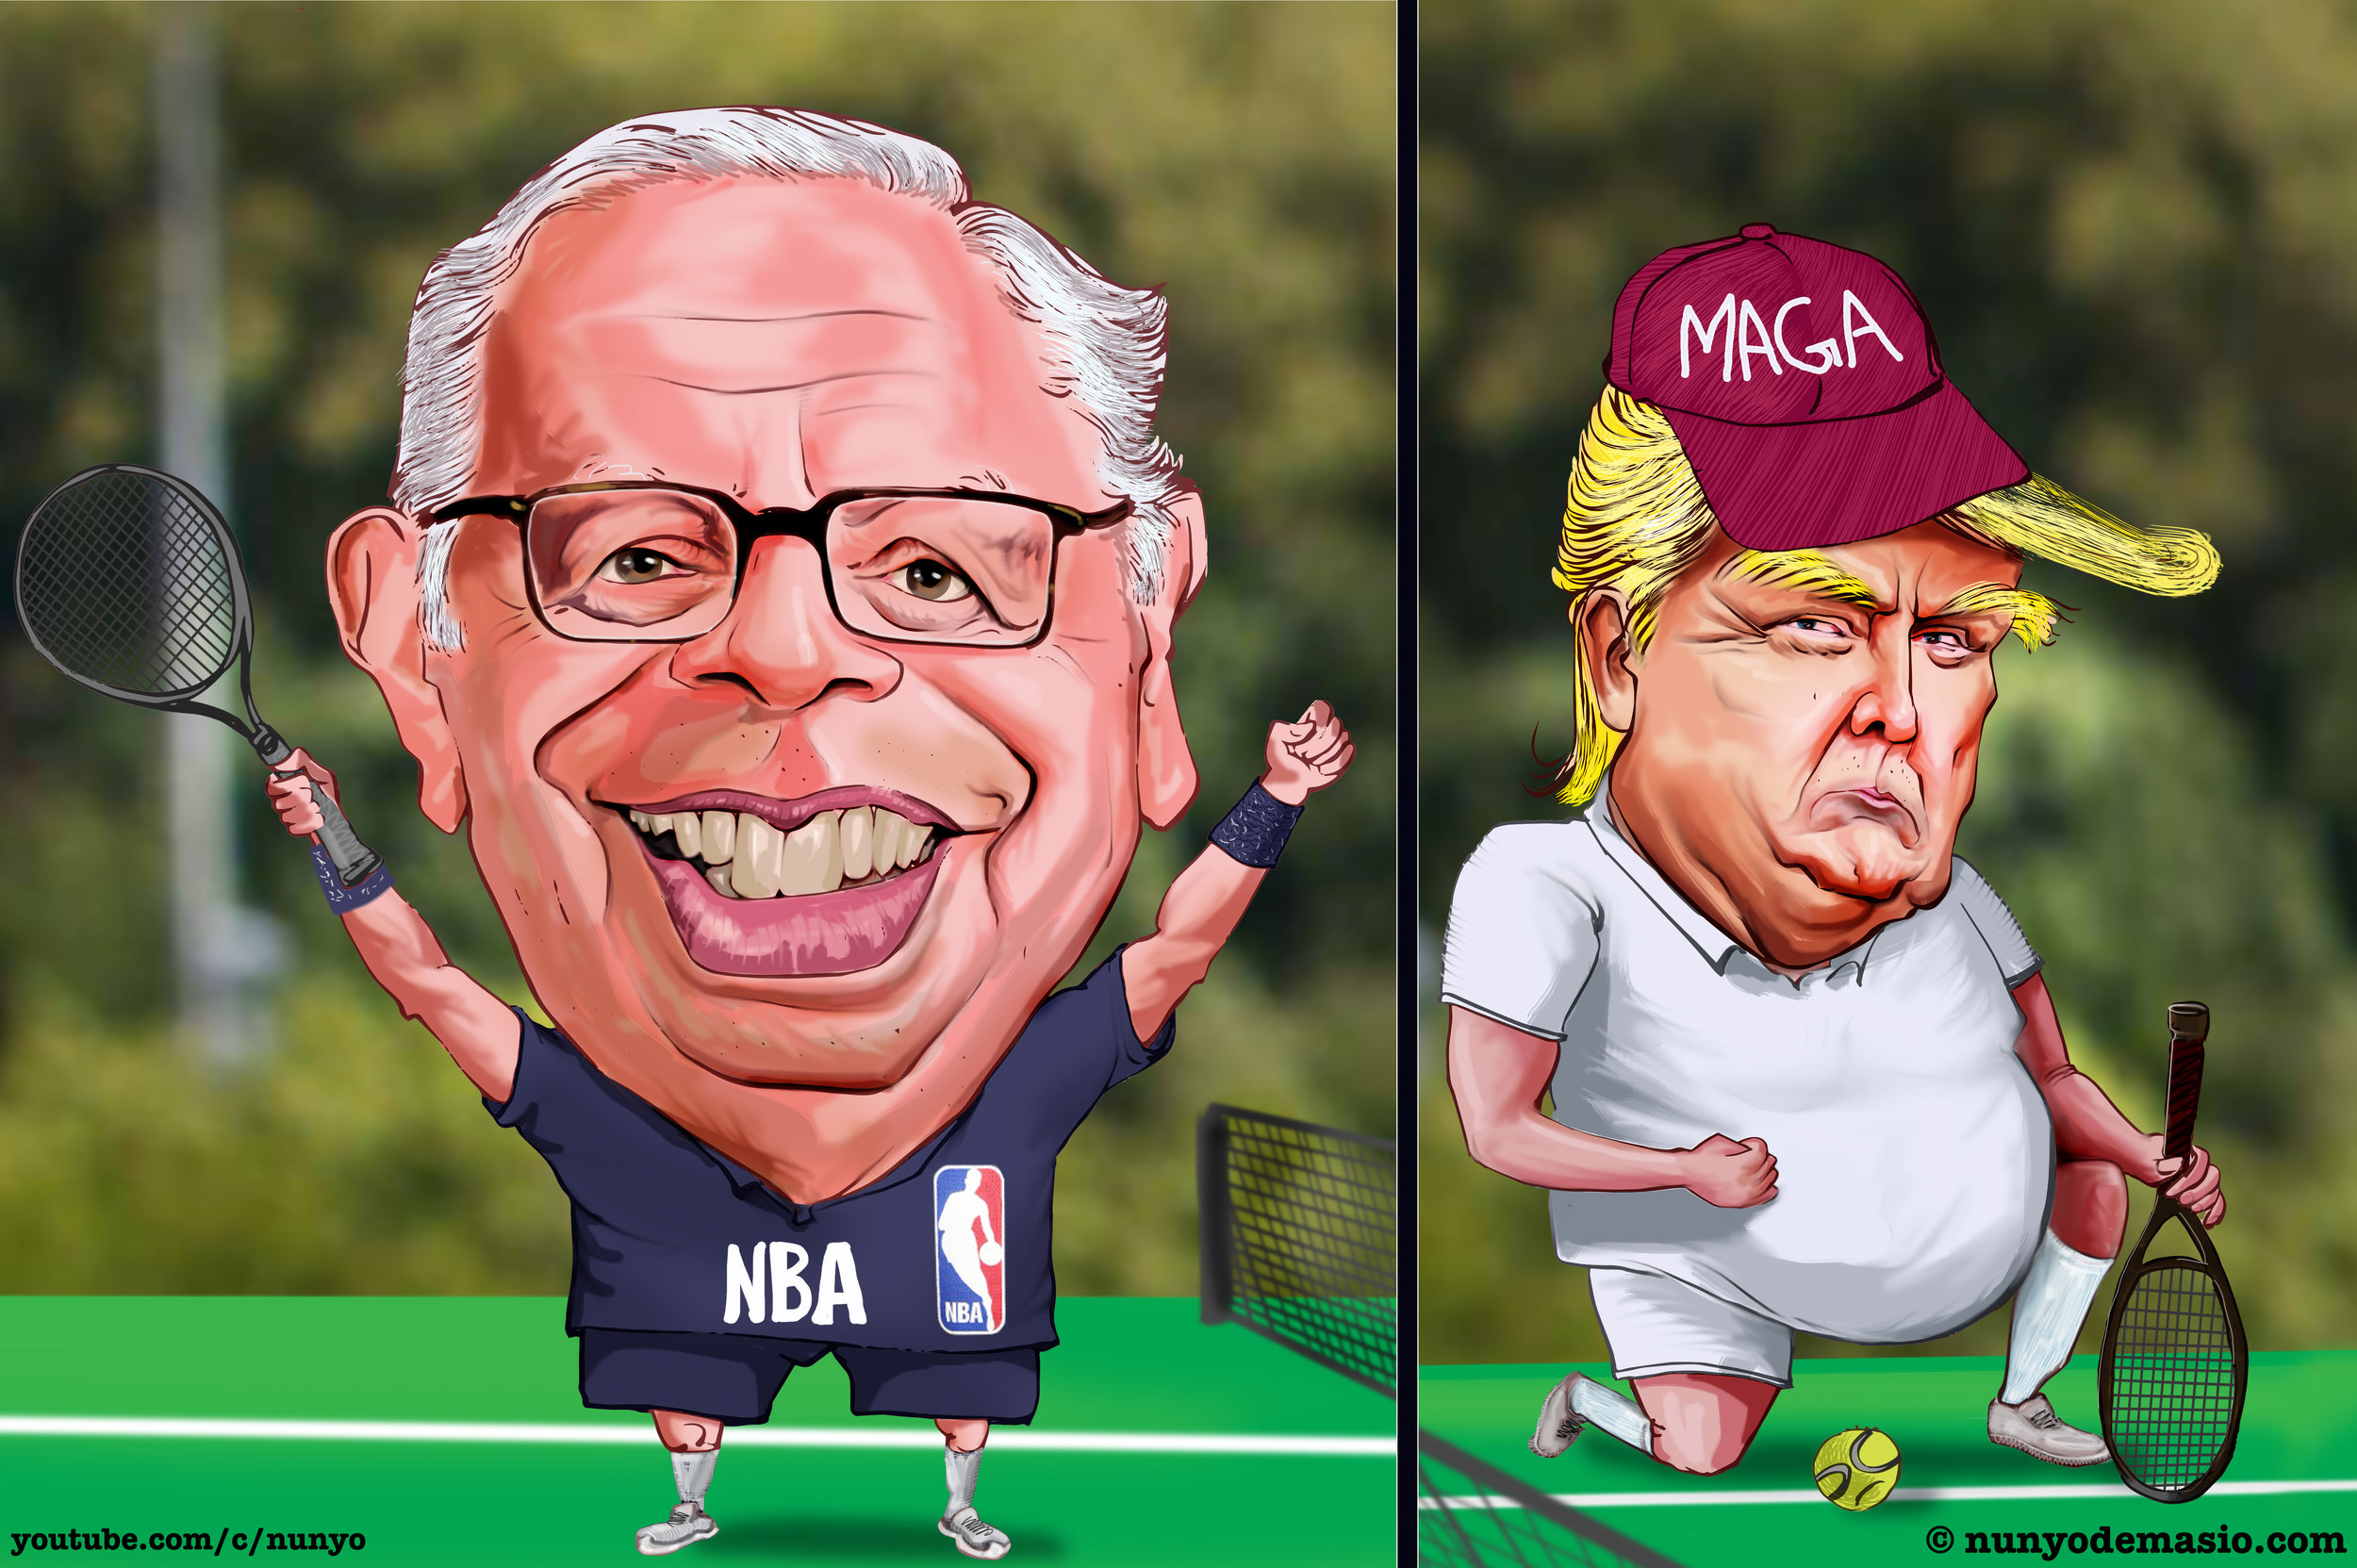 Donald Trump vs. David Stern in the Memorable Tennis Match (And the Rematch That Never Came)